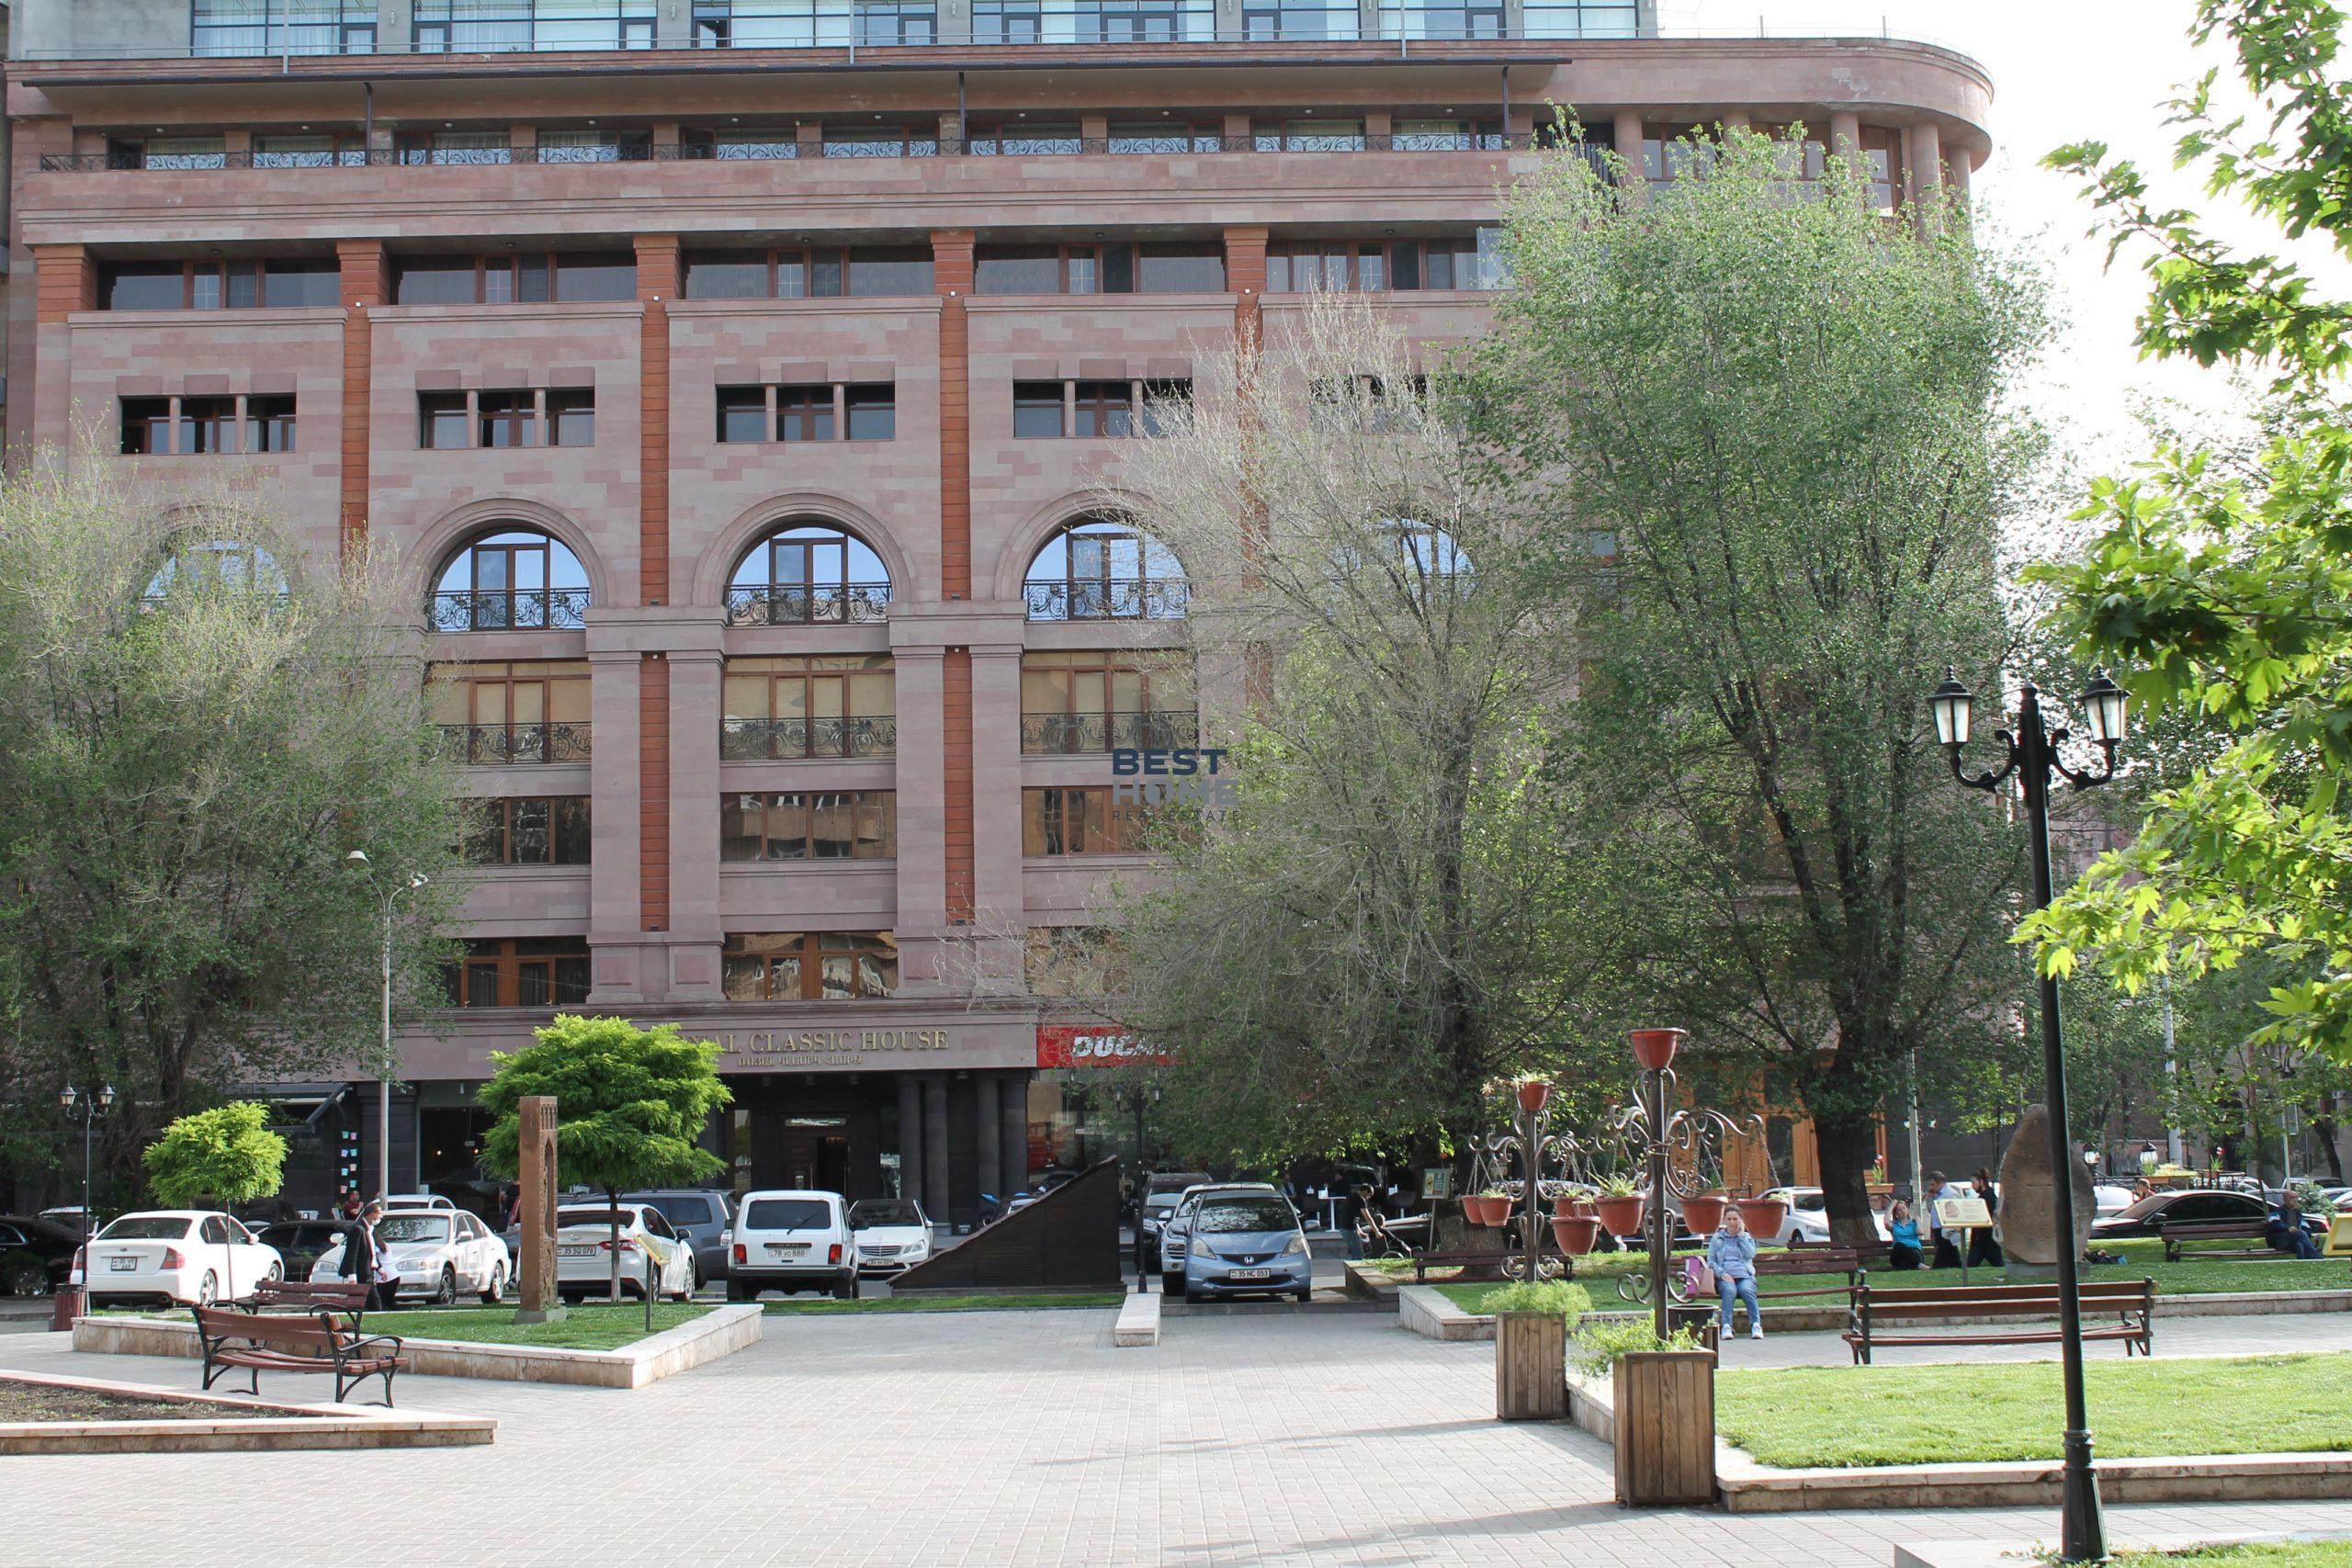 Property in Armenia. Real estate in a center of Yerevan for sale or rent. Apartments and houses in a new buildings.